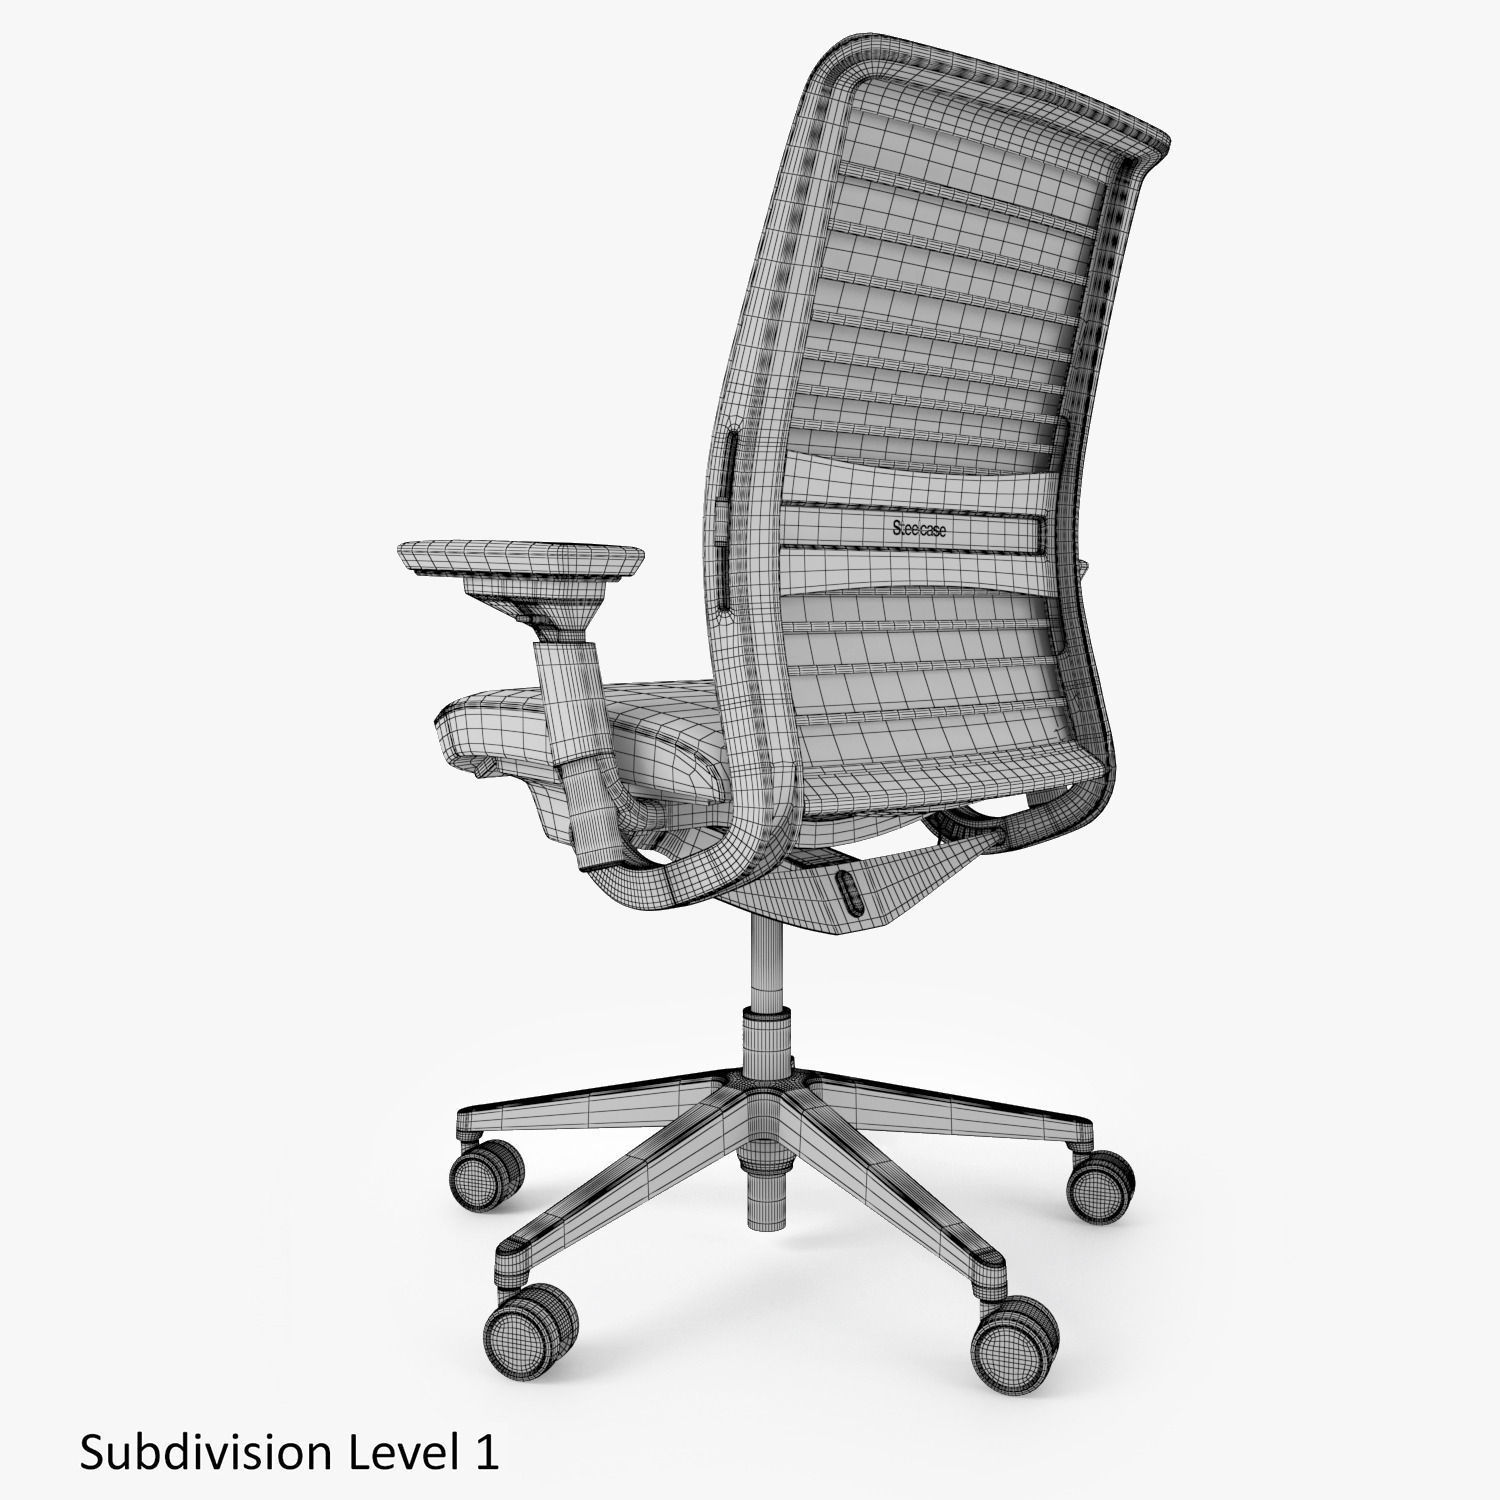 office max chair wholesale covers and sashes for sale steelcase think 3d model obj fbx mtl